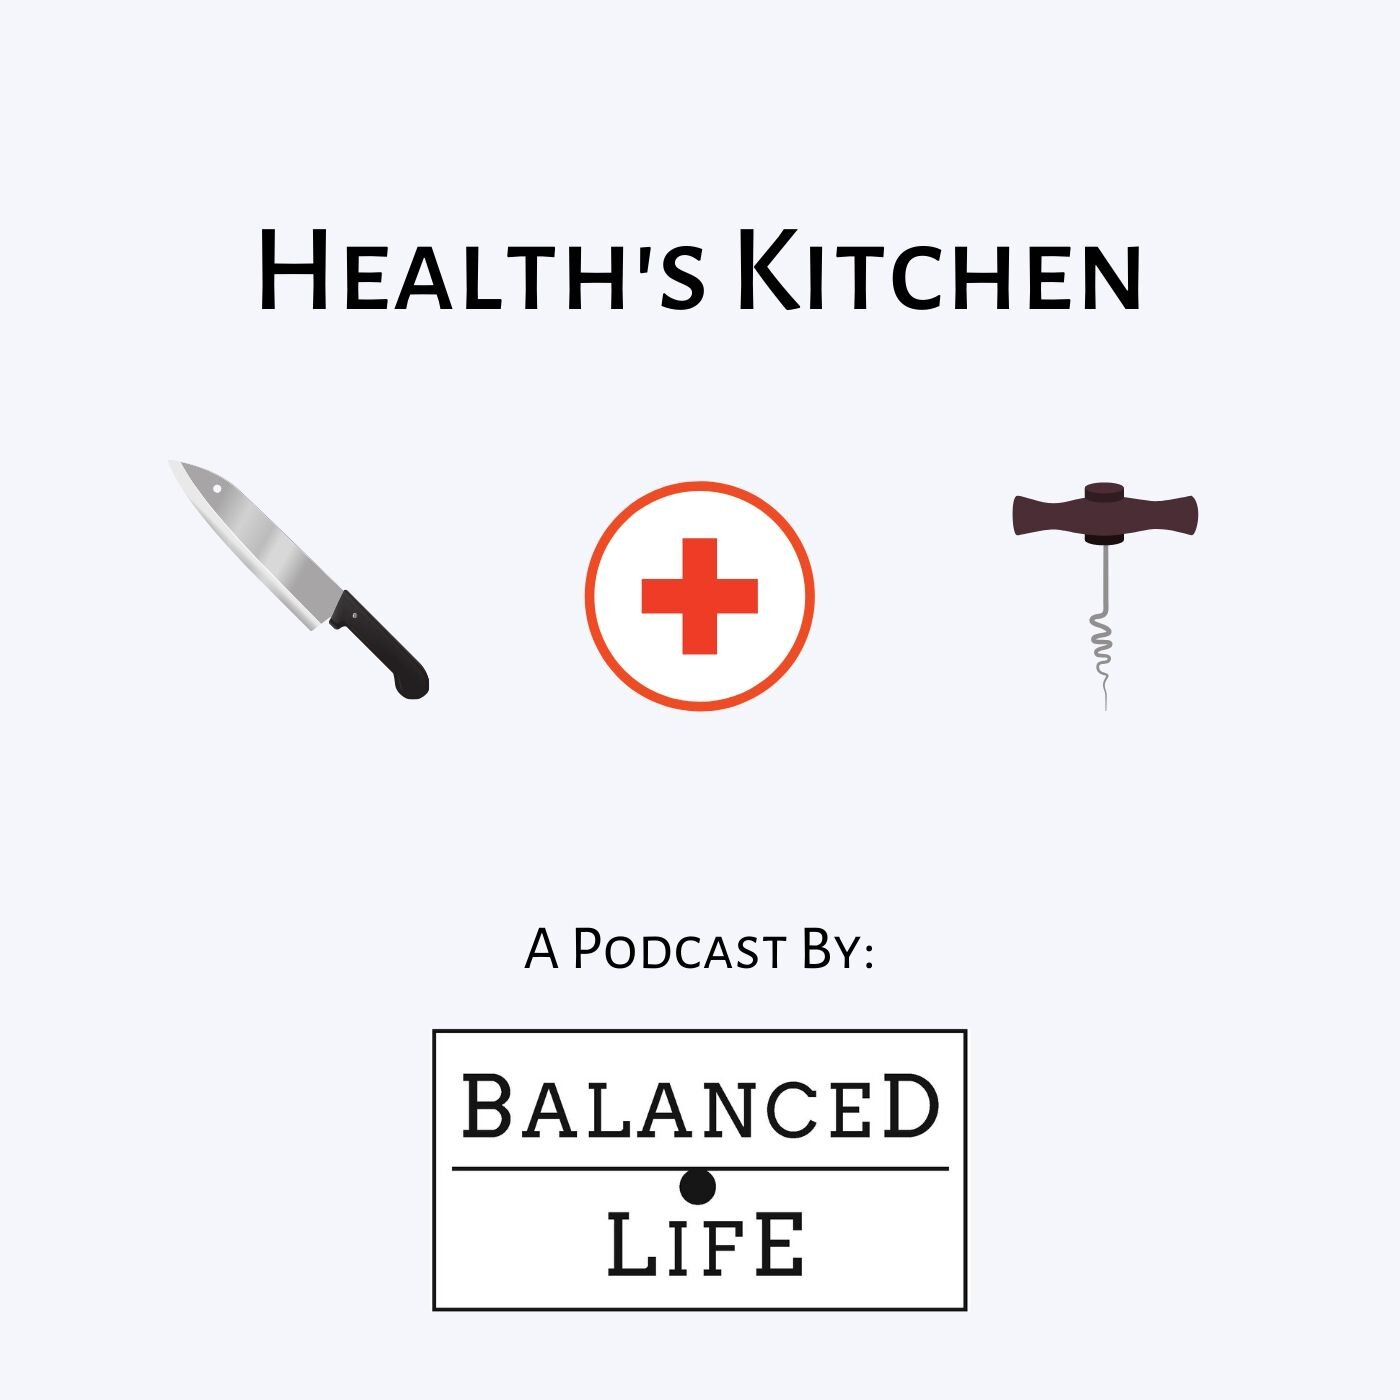 Health's Kitchen